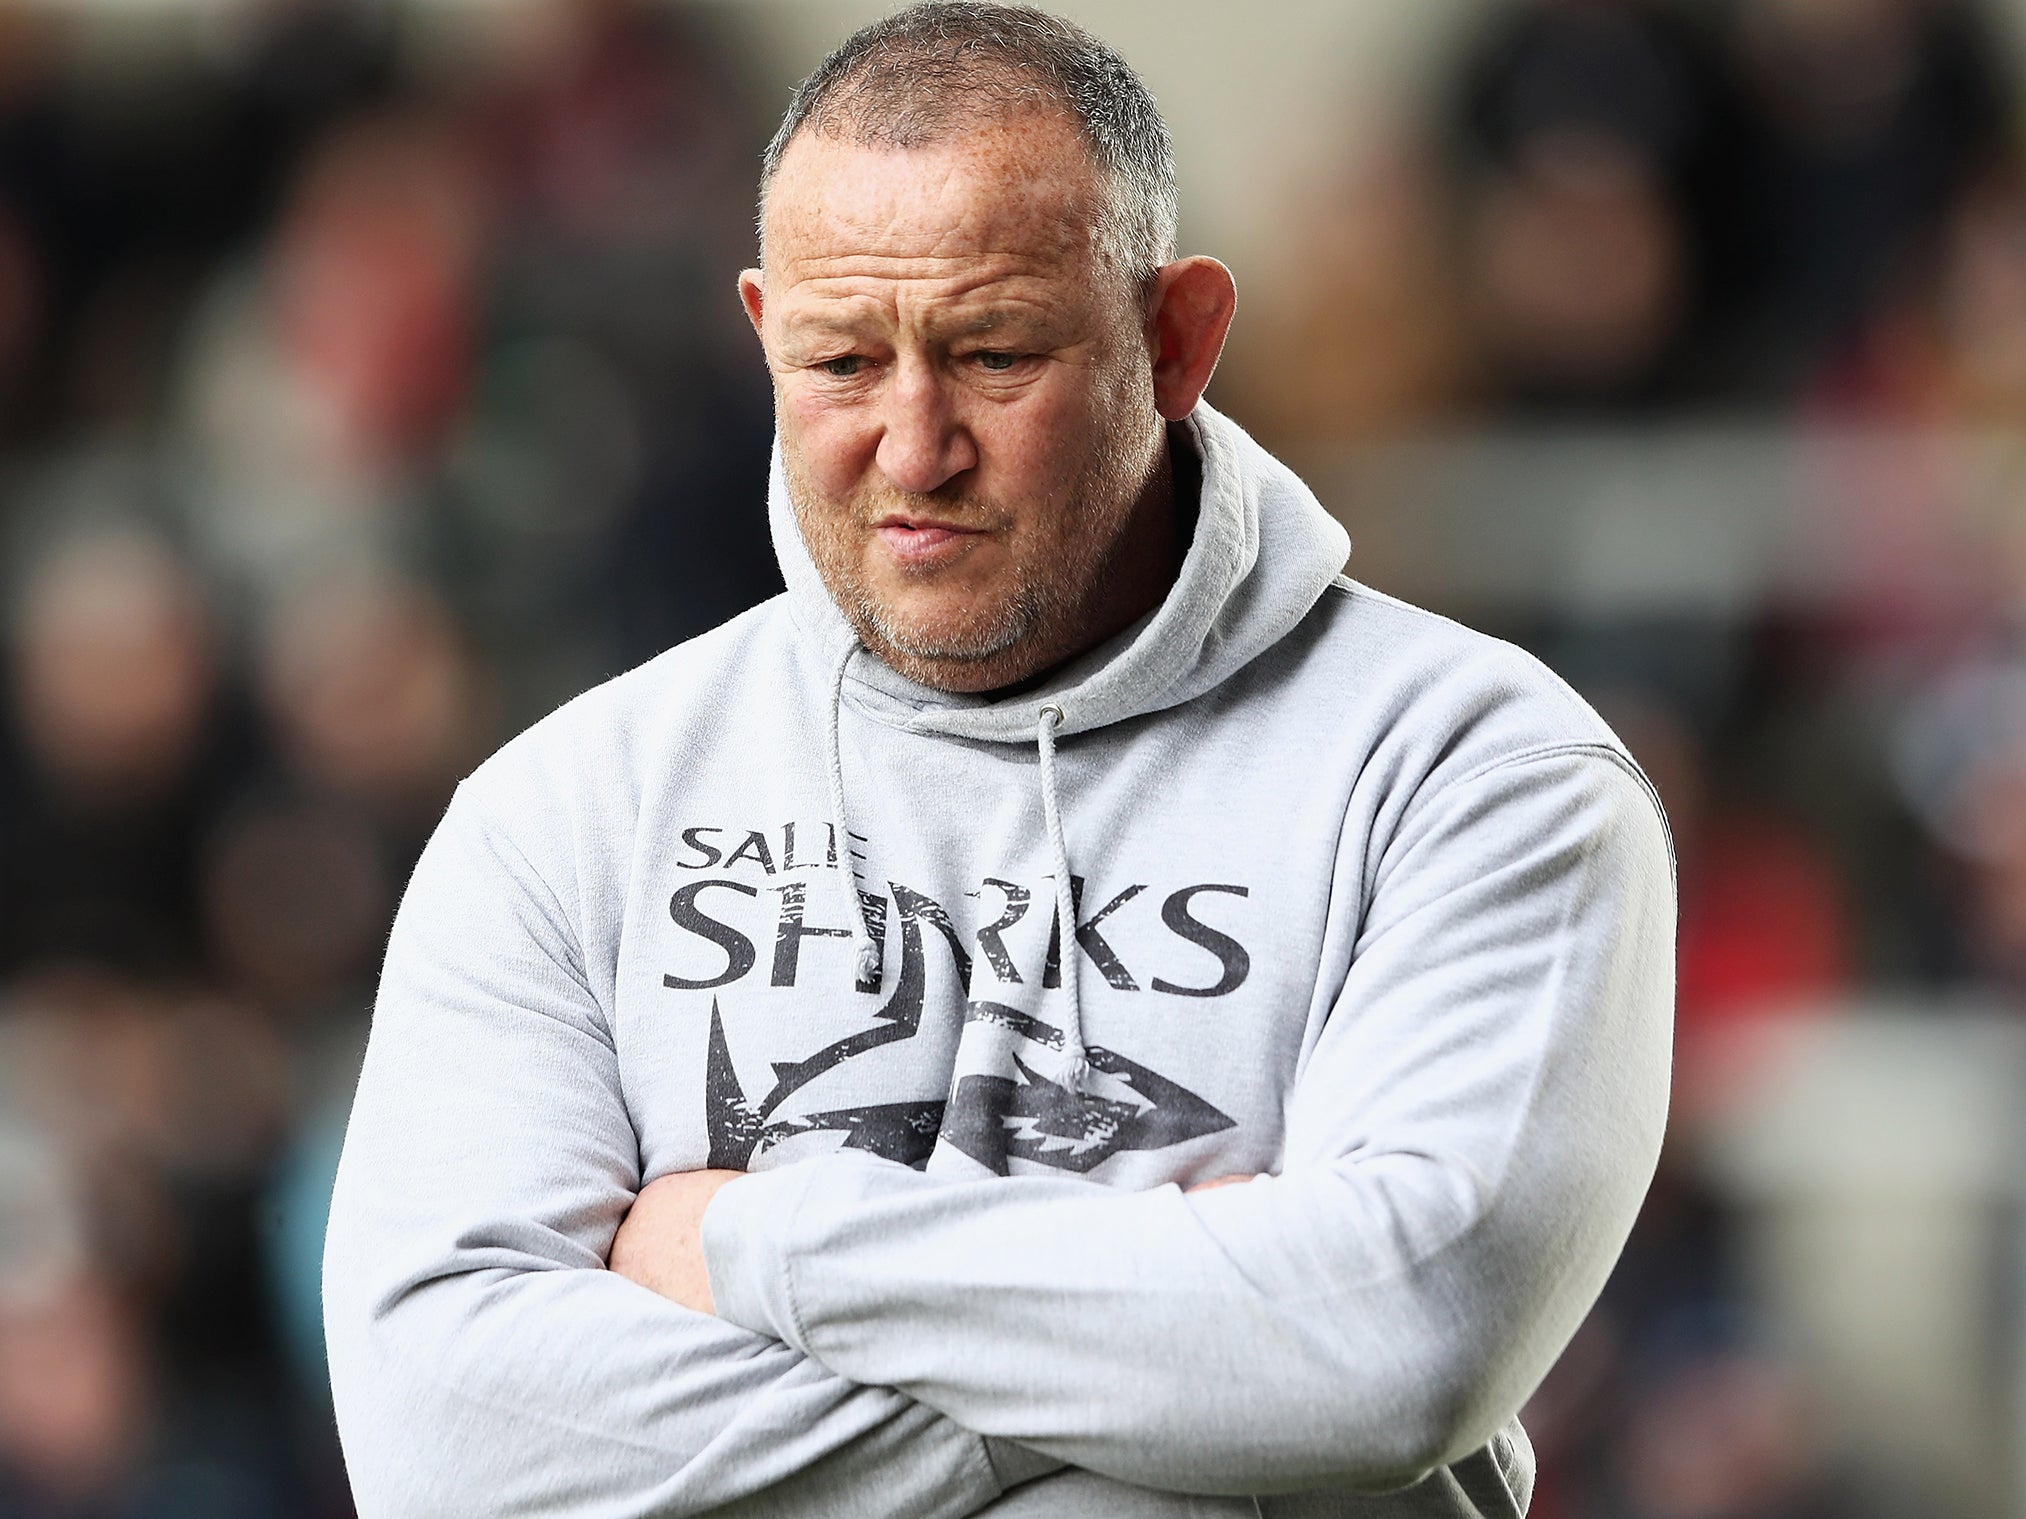 Sale director of rugby Steve Diamond will not face action for altercation with Independent journalist Sam Peters